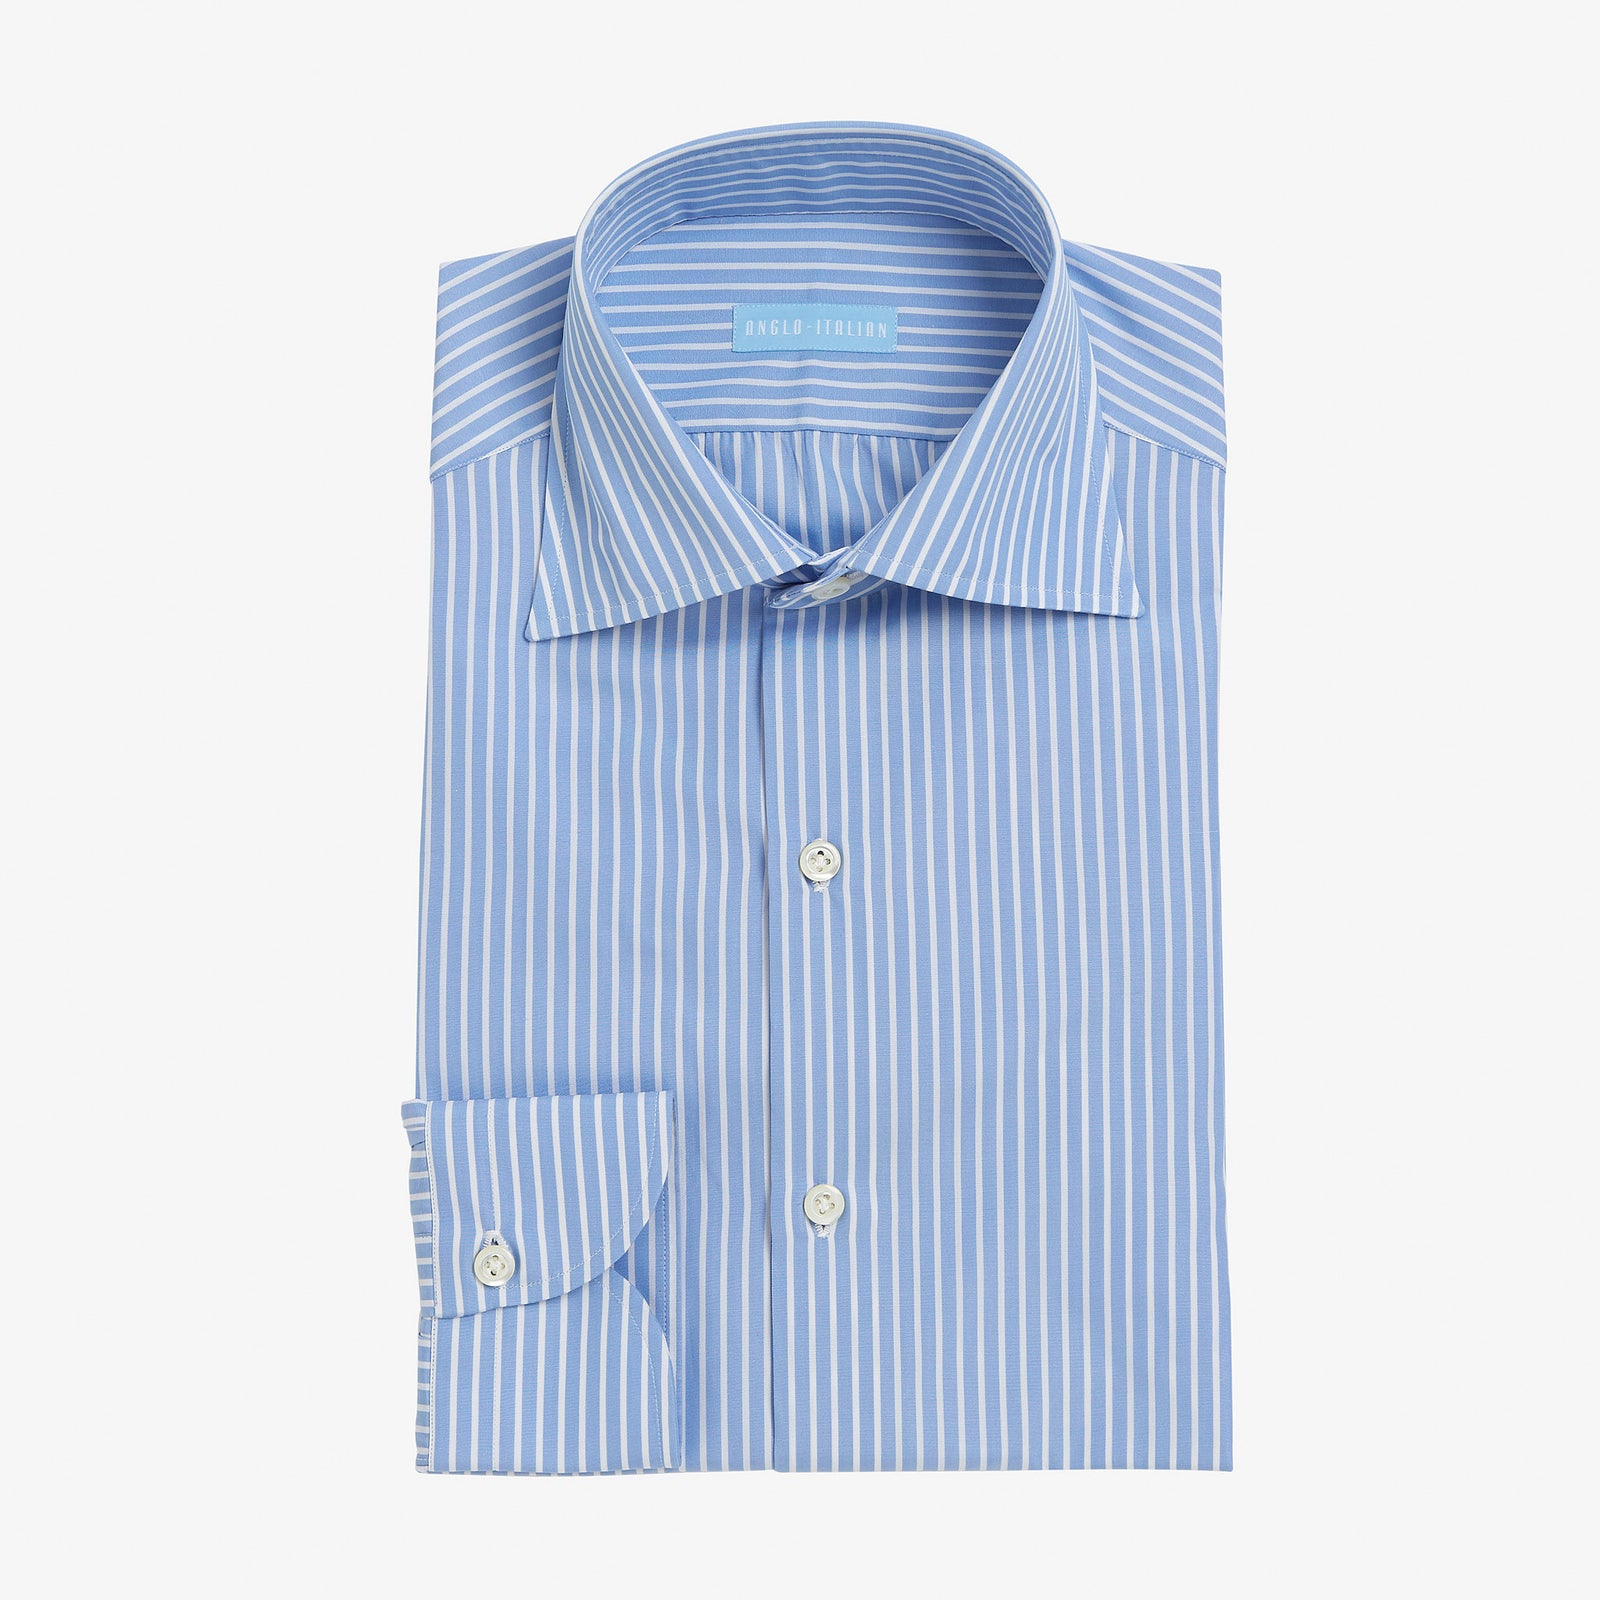 Spread Collar Shirt Cotton Sky Blue Reverse Stripe